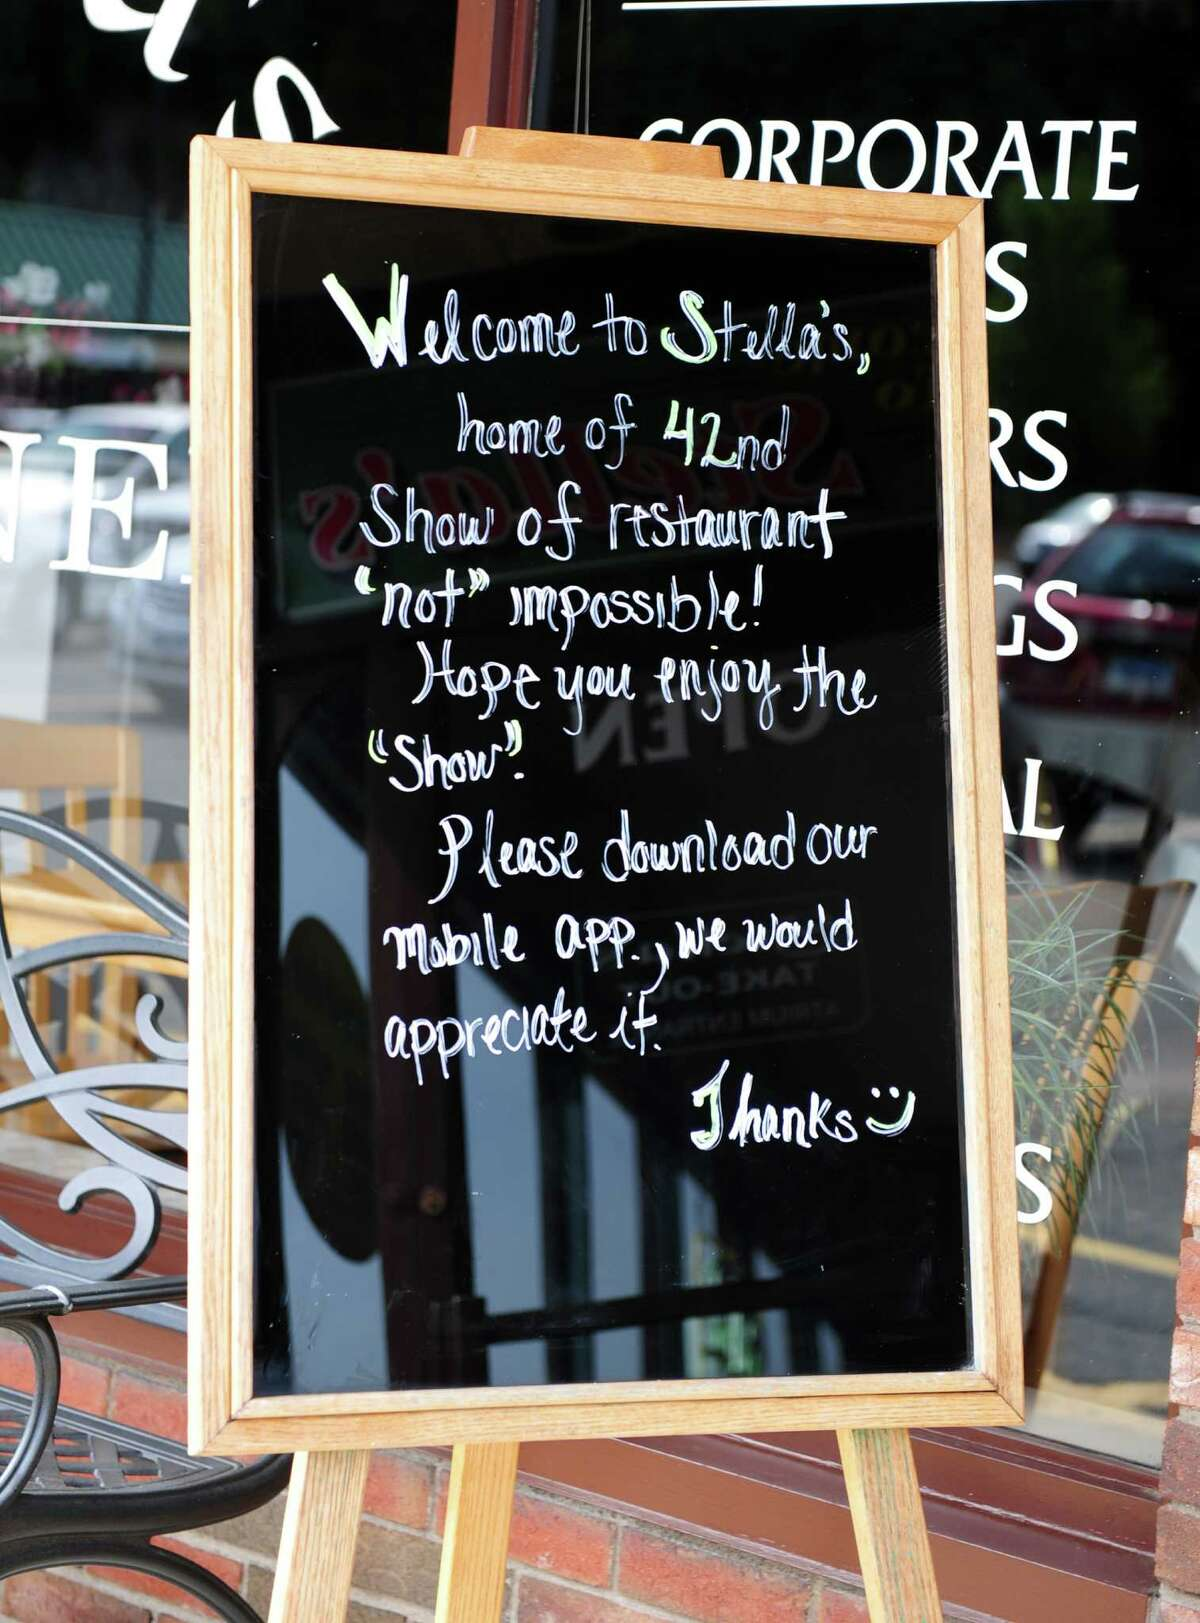 Stella's Restaurant in Stratford, Conn. received a makeover from Food Network's